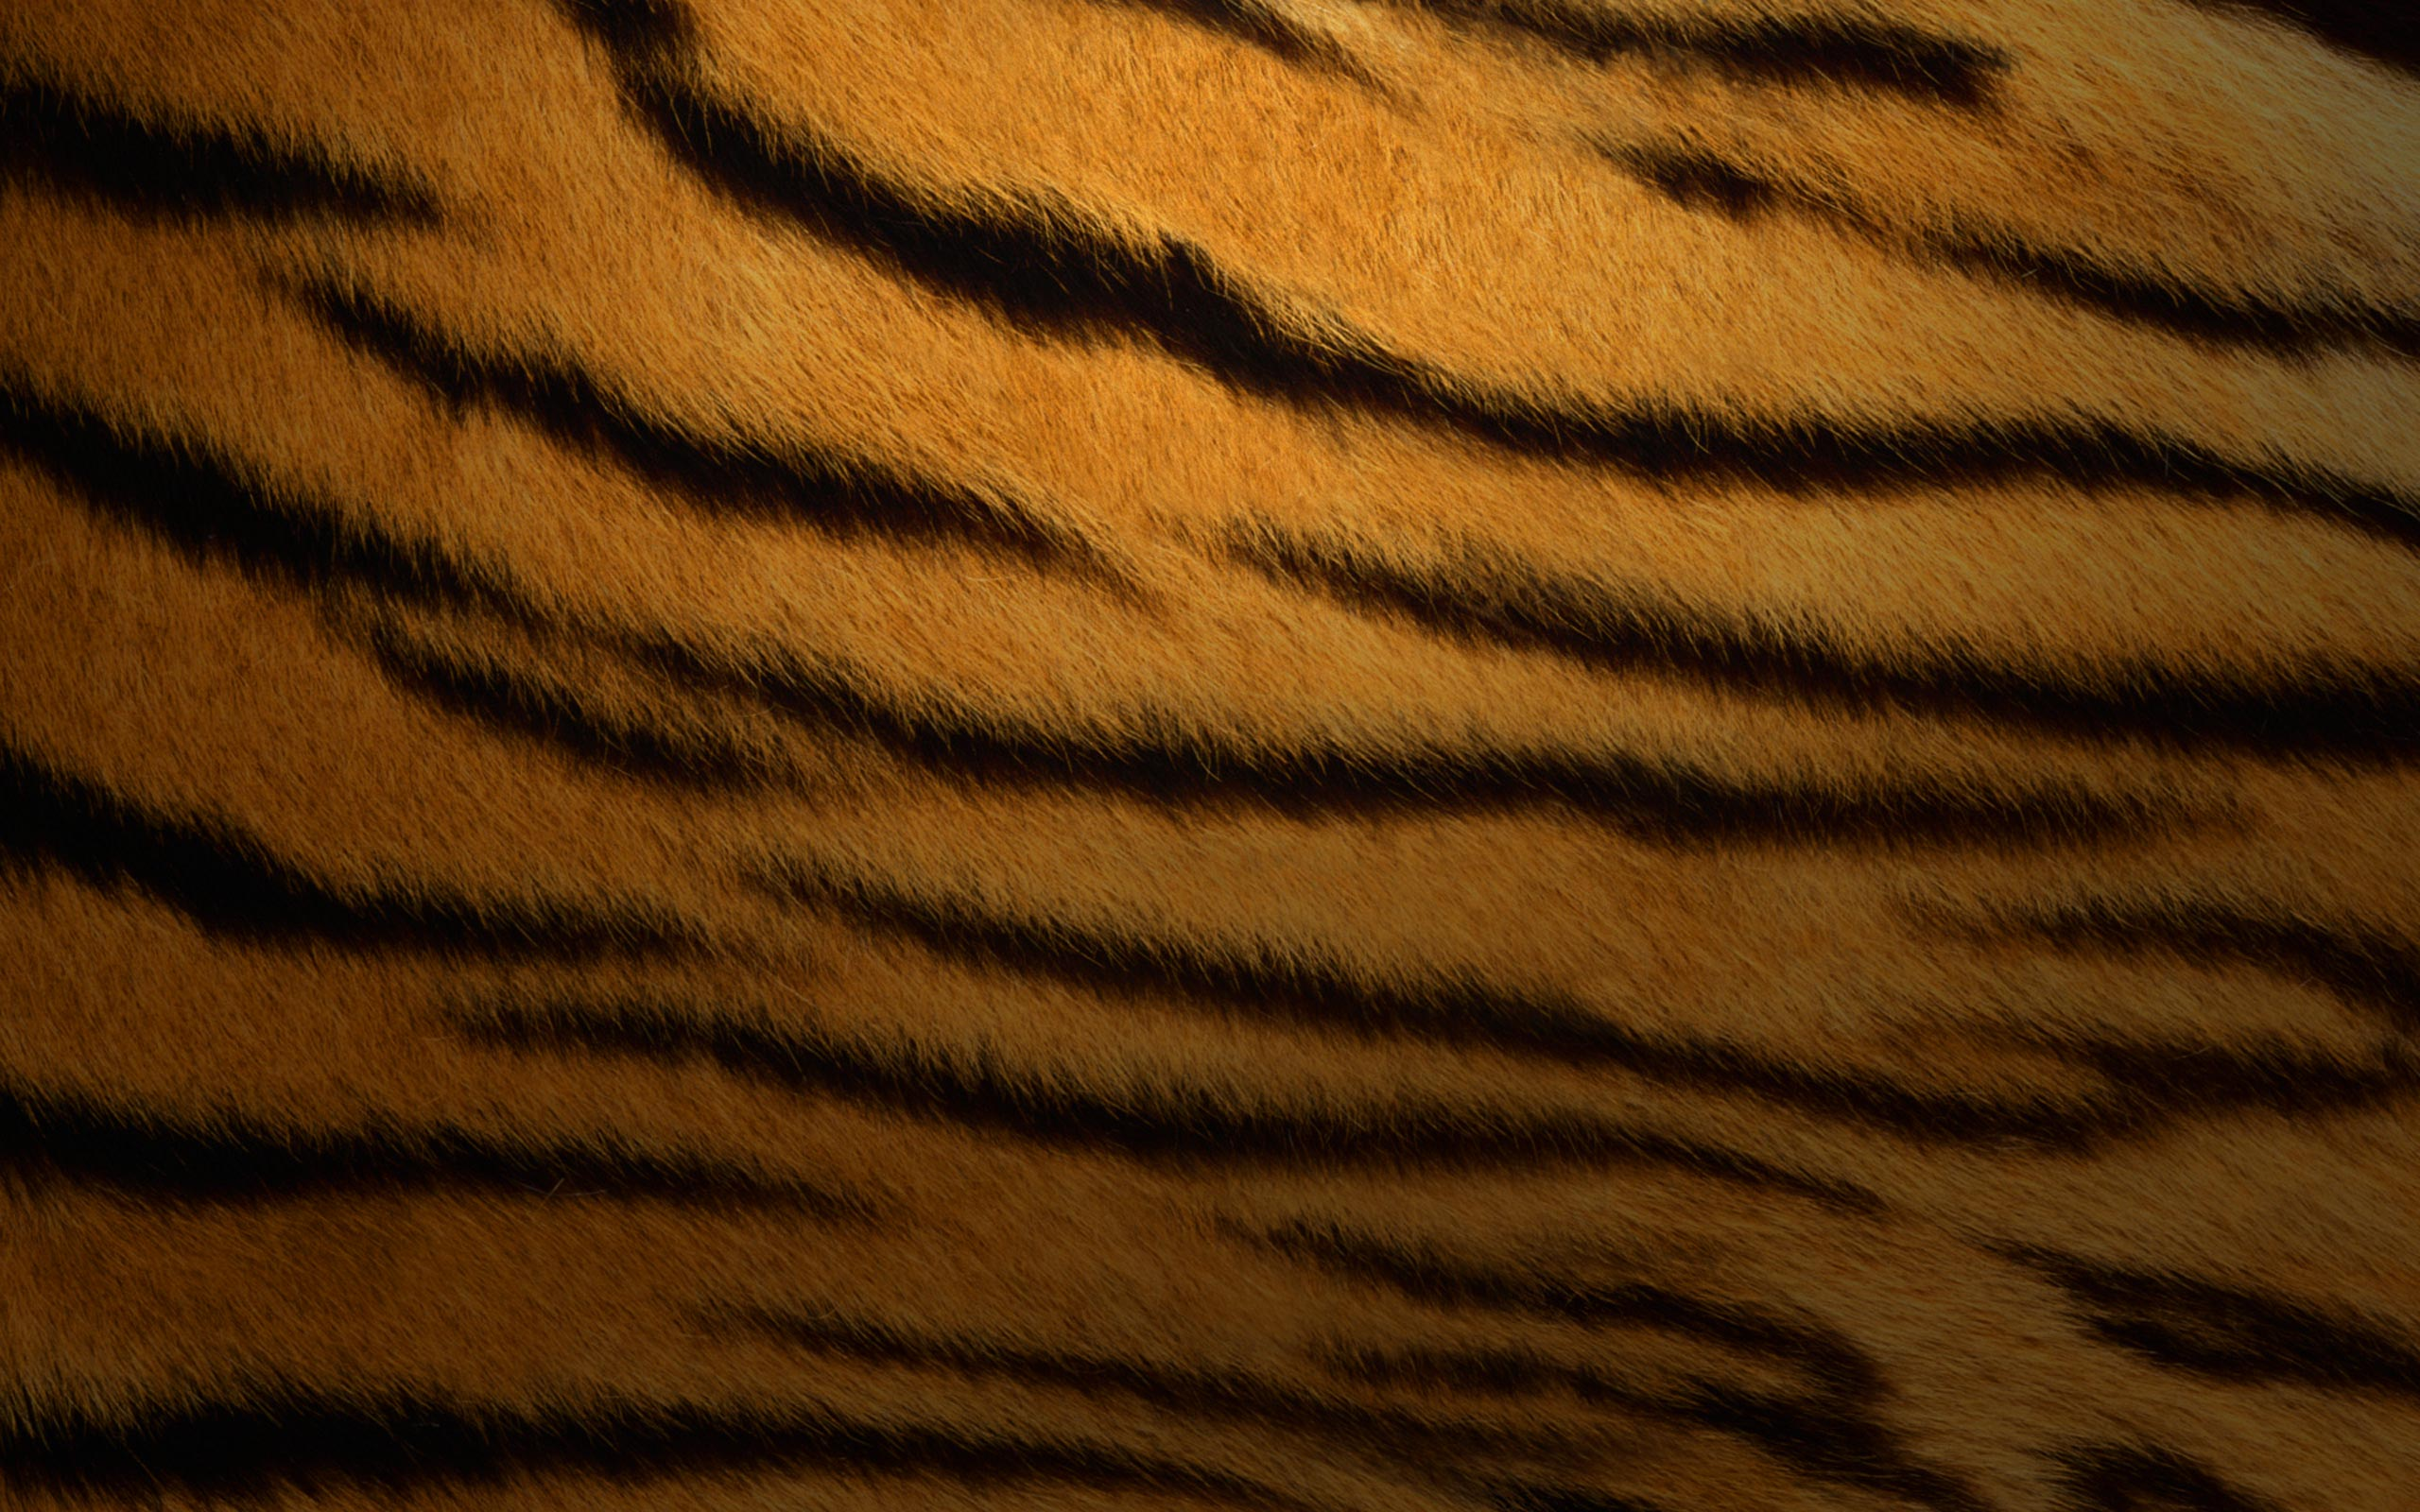 2560×1600 Mac OS Tiger Wallpaper For PC, Mac, IPhone And IPad Wallpaper